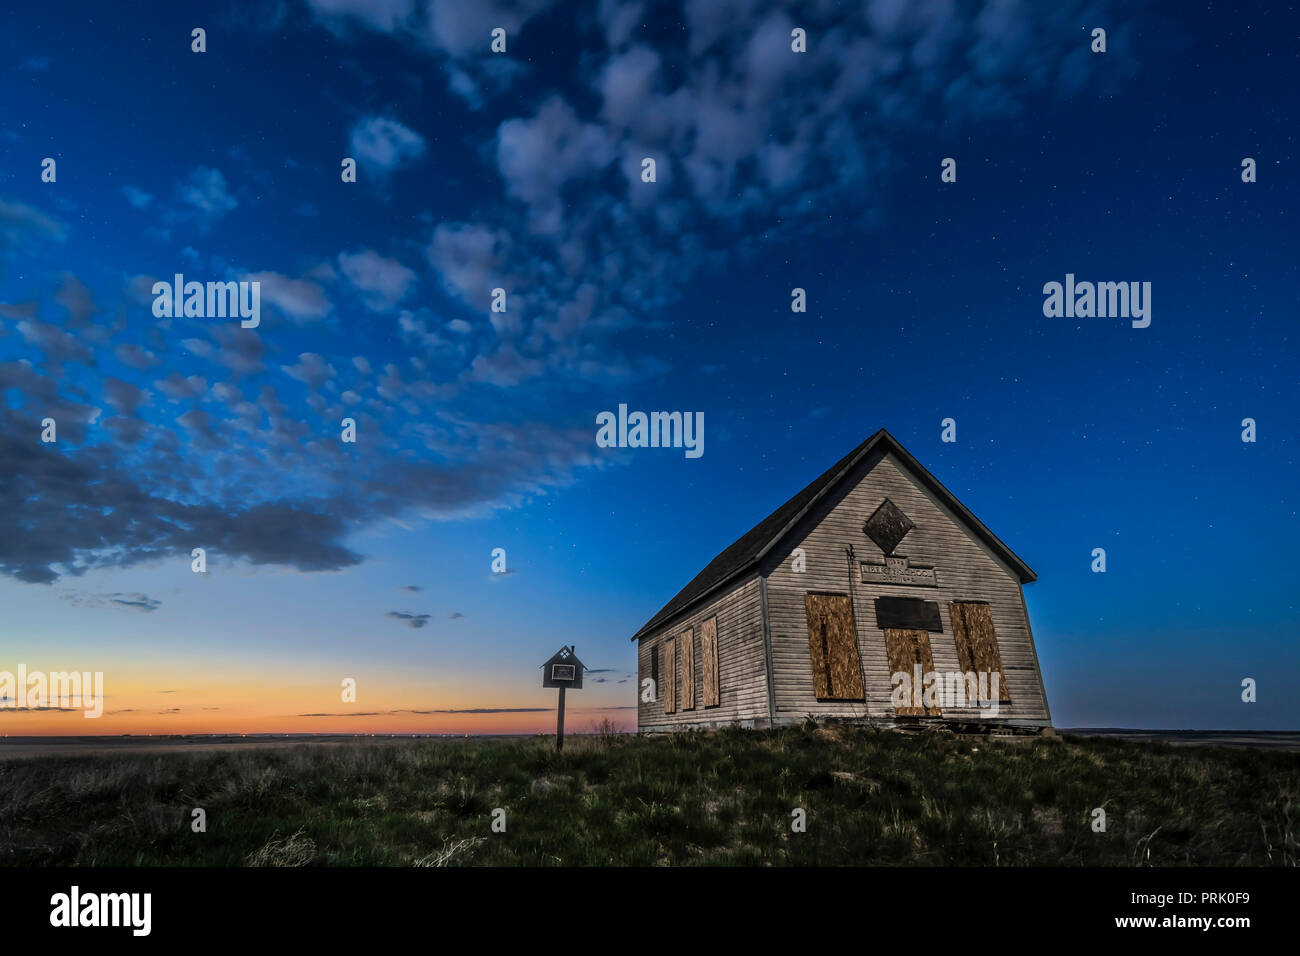 The 1910 Liberty Schoolhouse, a classic pioneer one-room school, on the Alberta prairie under the stars in the twilight of a spring night. Moonlight f - Stock Image